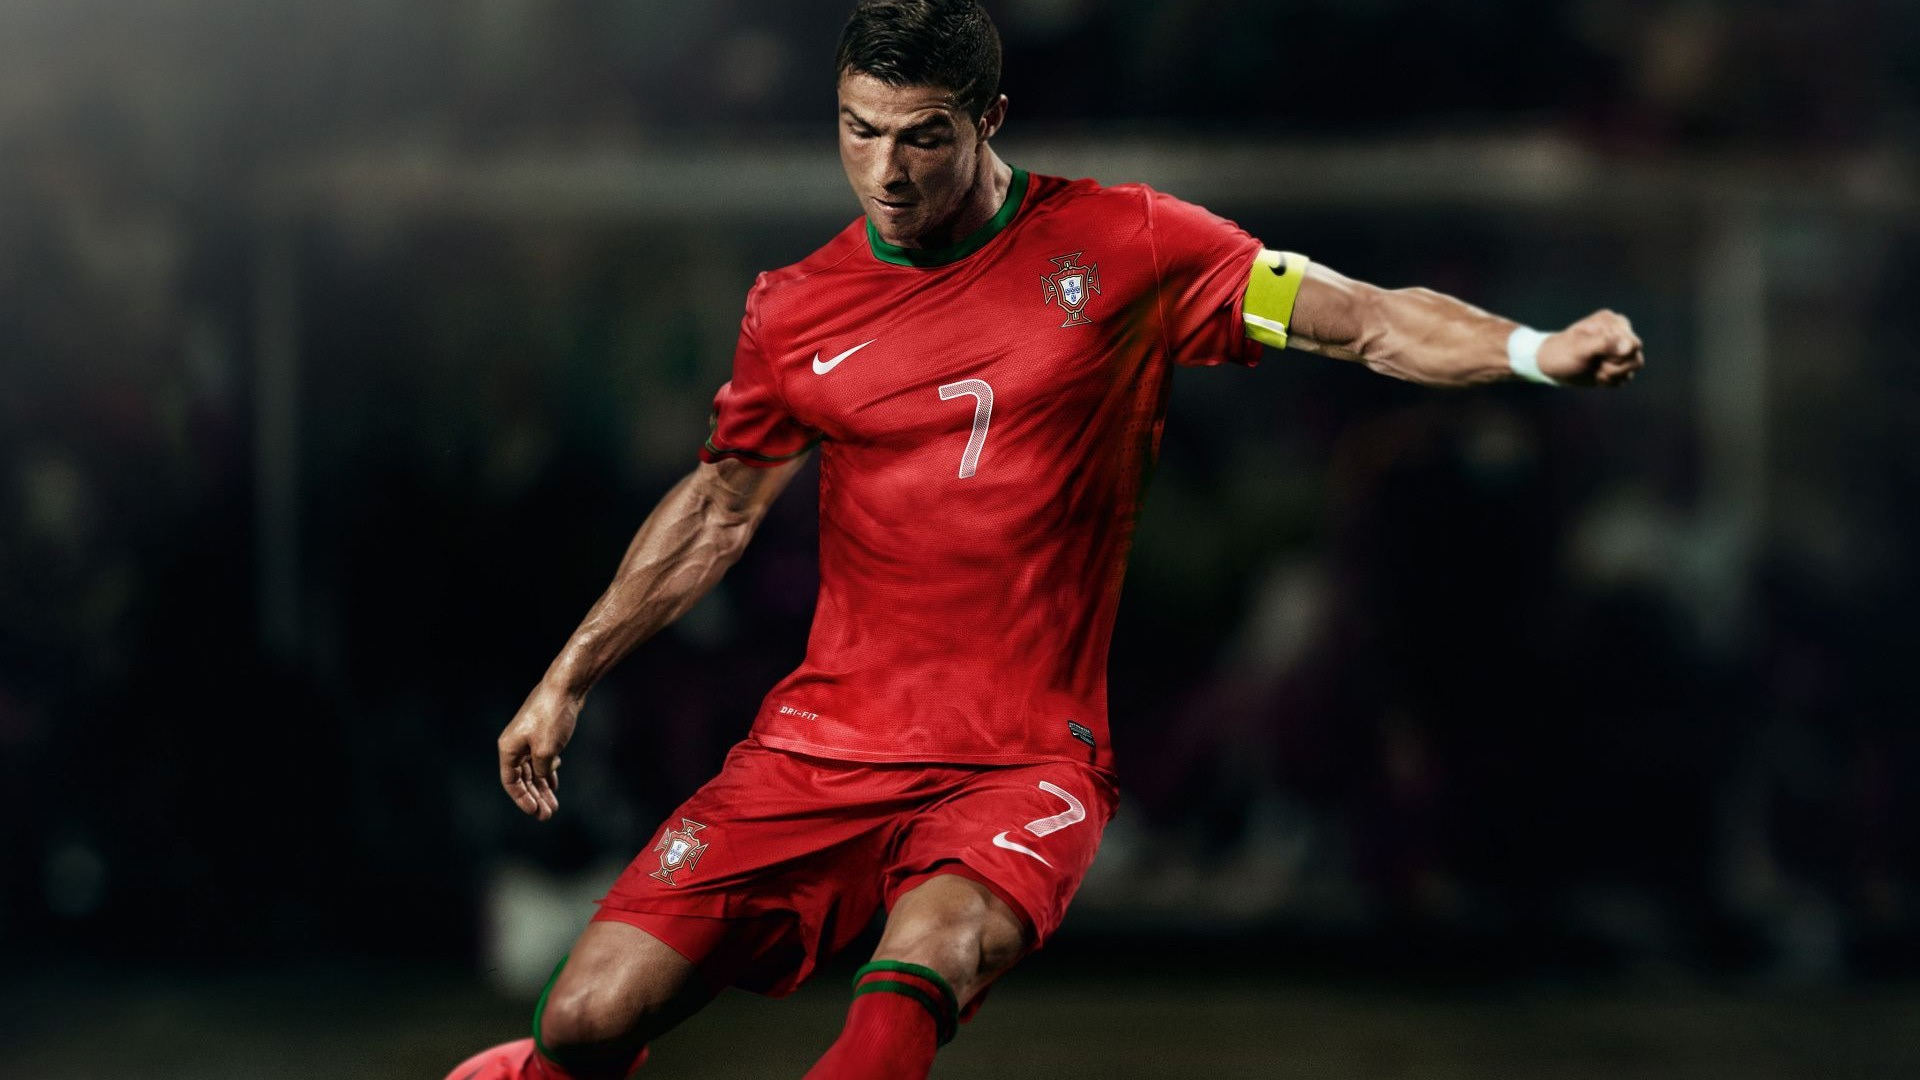 Download-Free-HD-p-of-Cristiano-Ronaldo-wallpaper-wp3404841